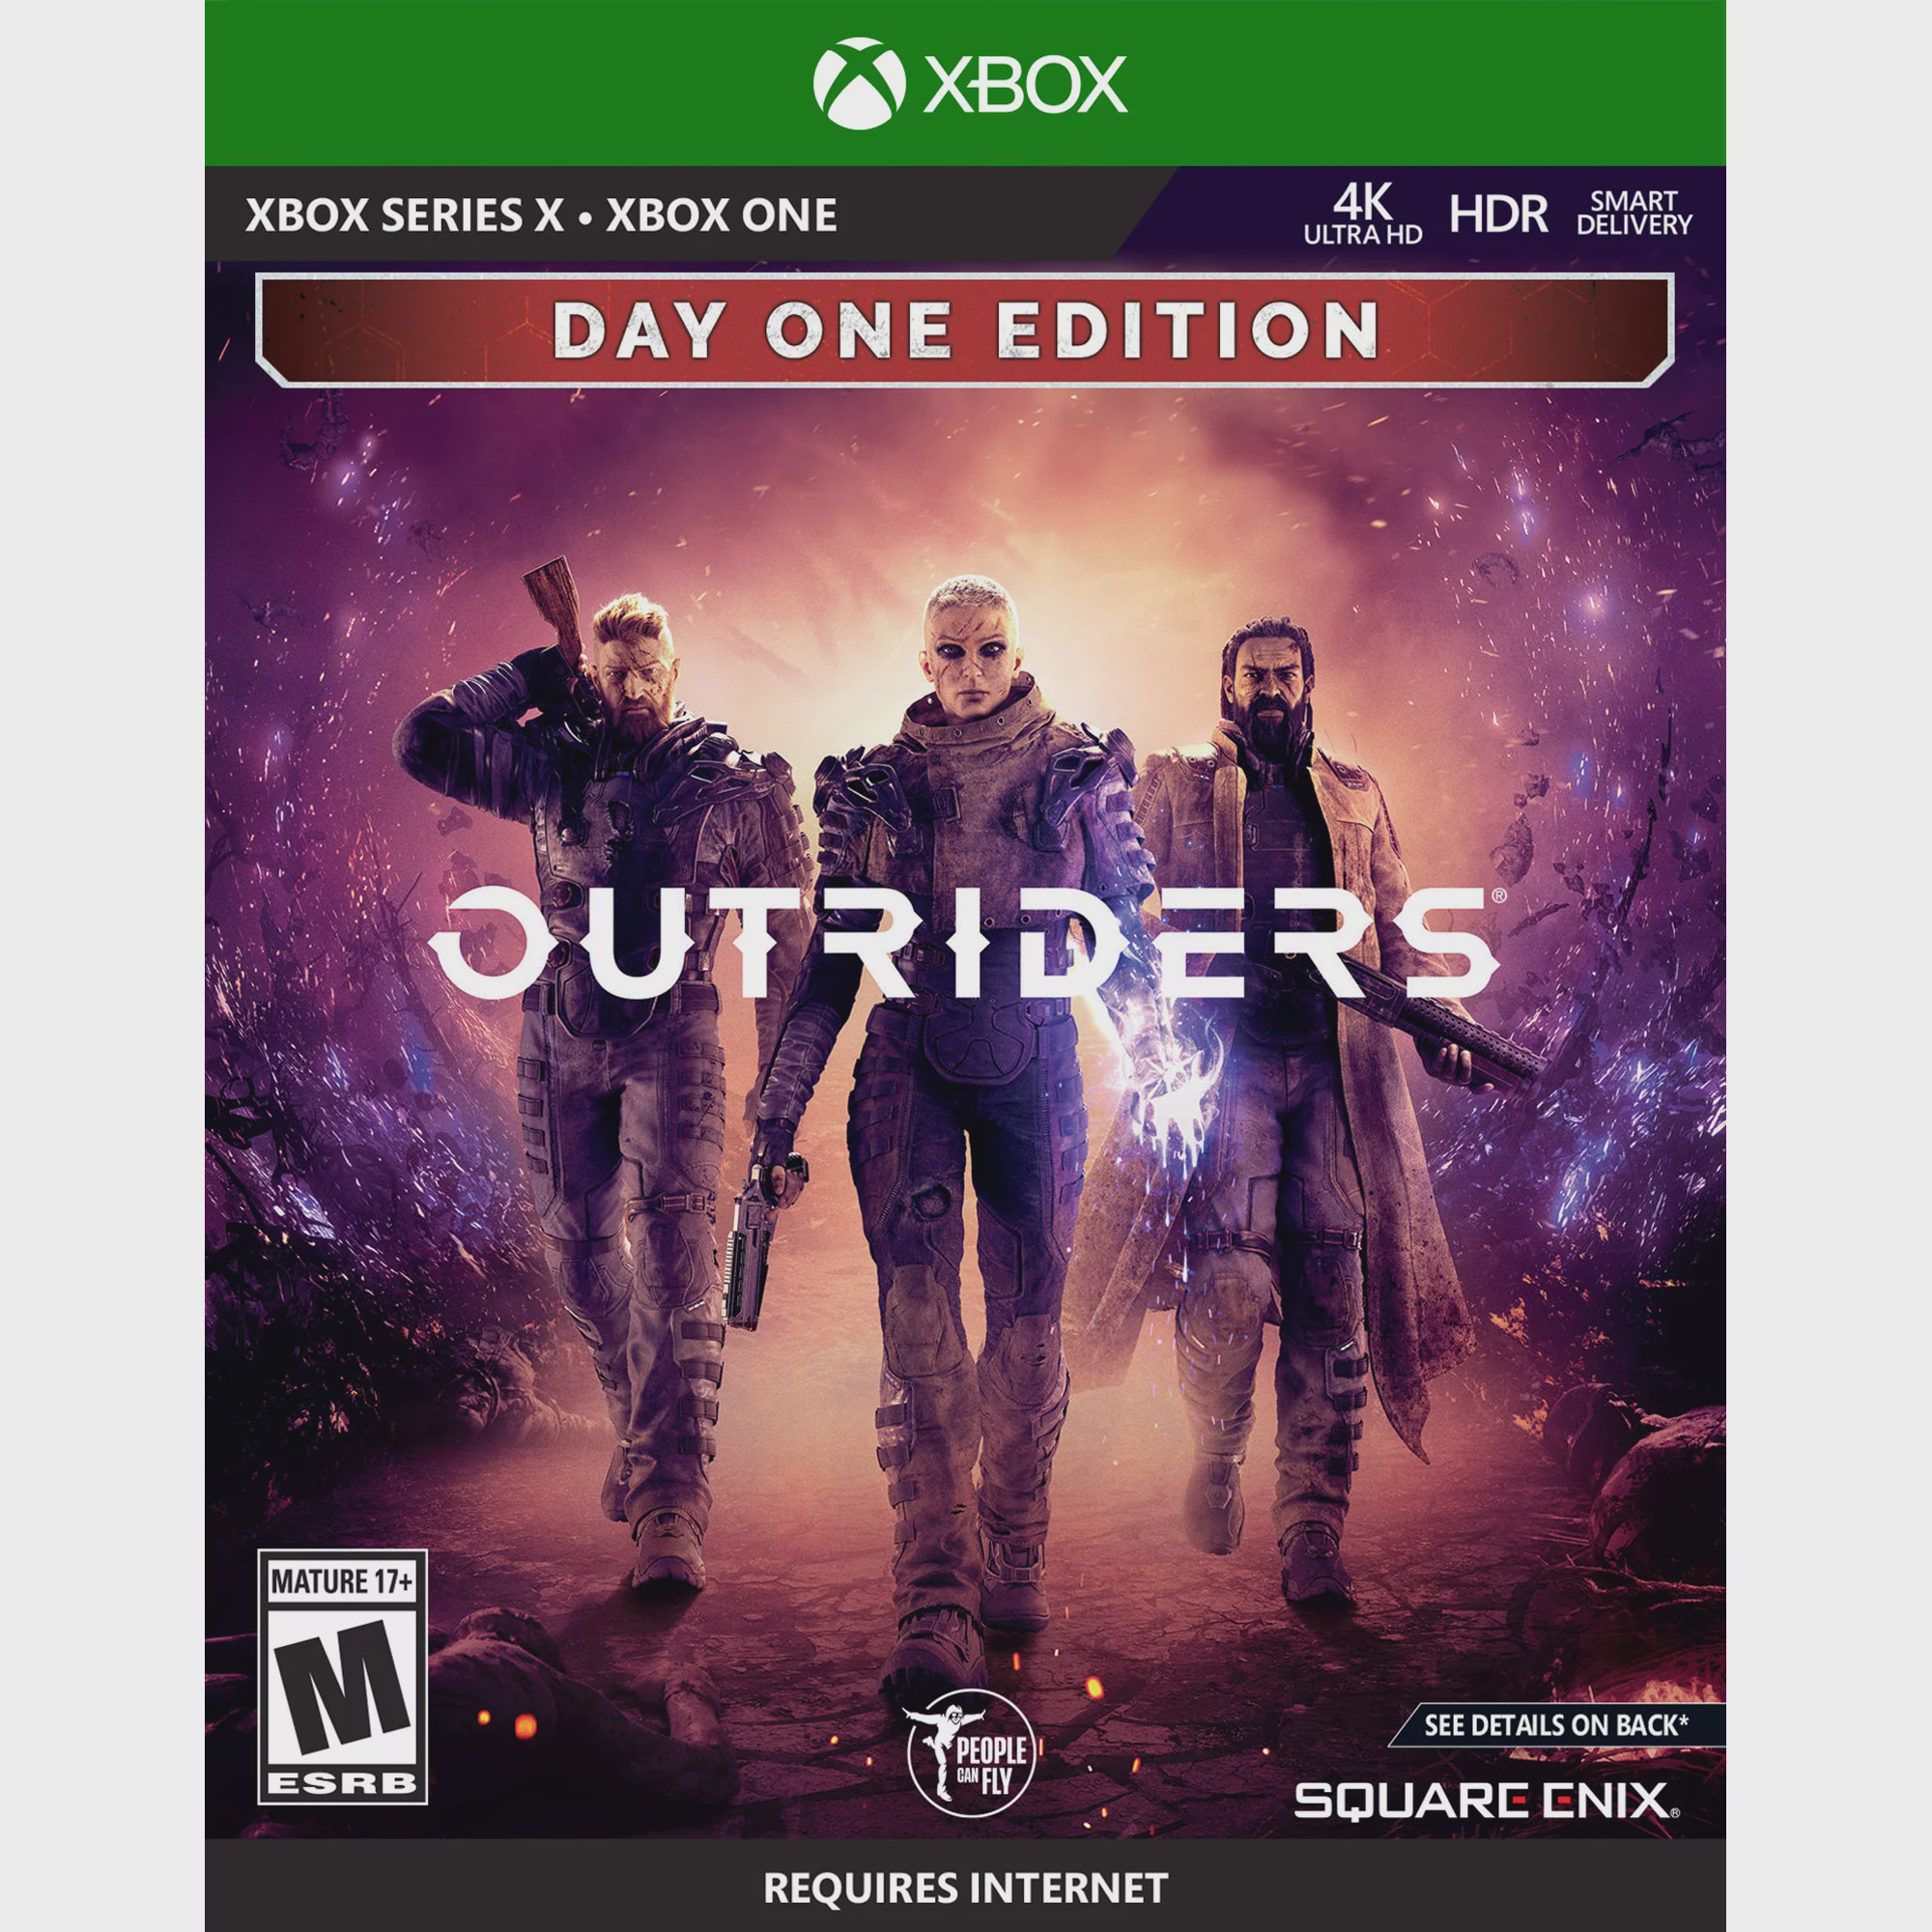 Outriders Day 1 Edition, Square Enix, Xbox Series X, Xbox One, [Physical], 662248923147